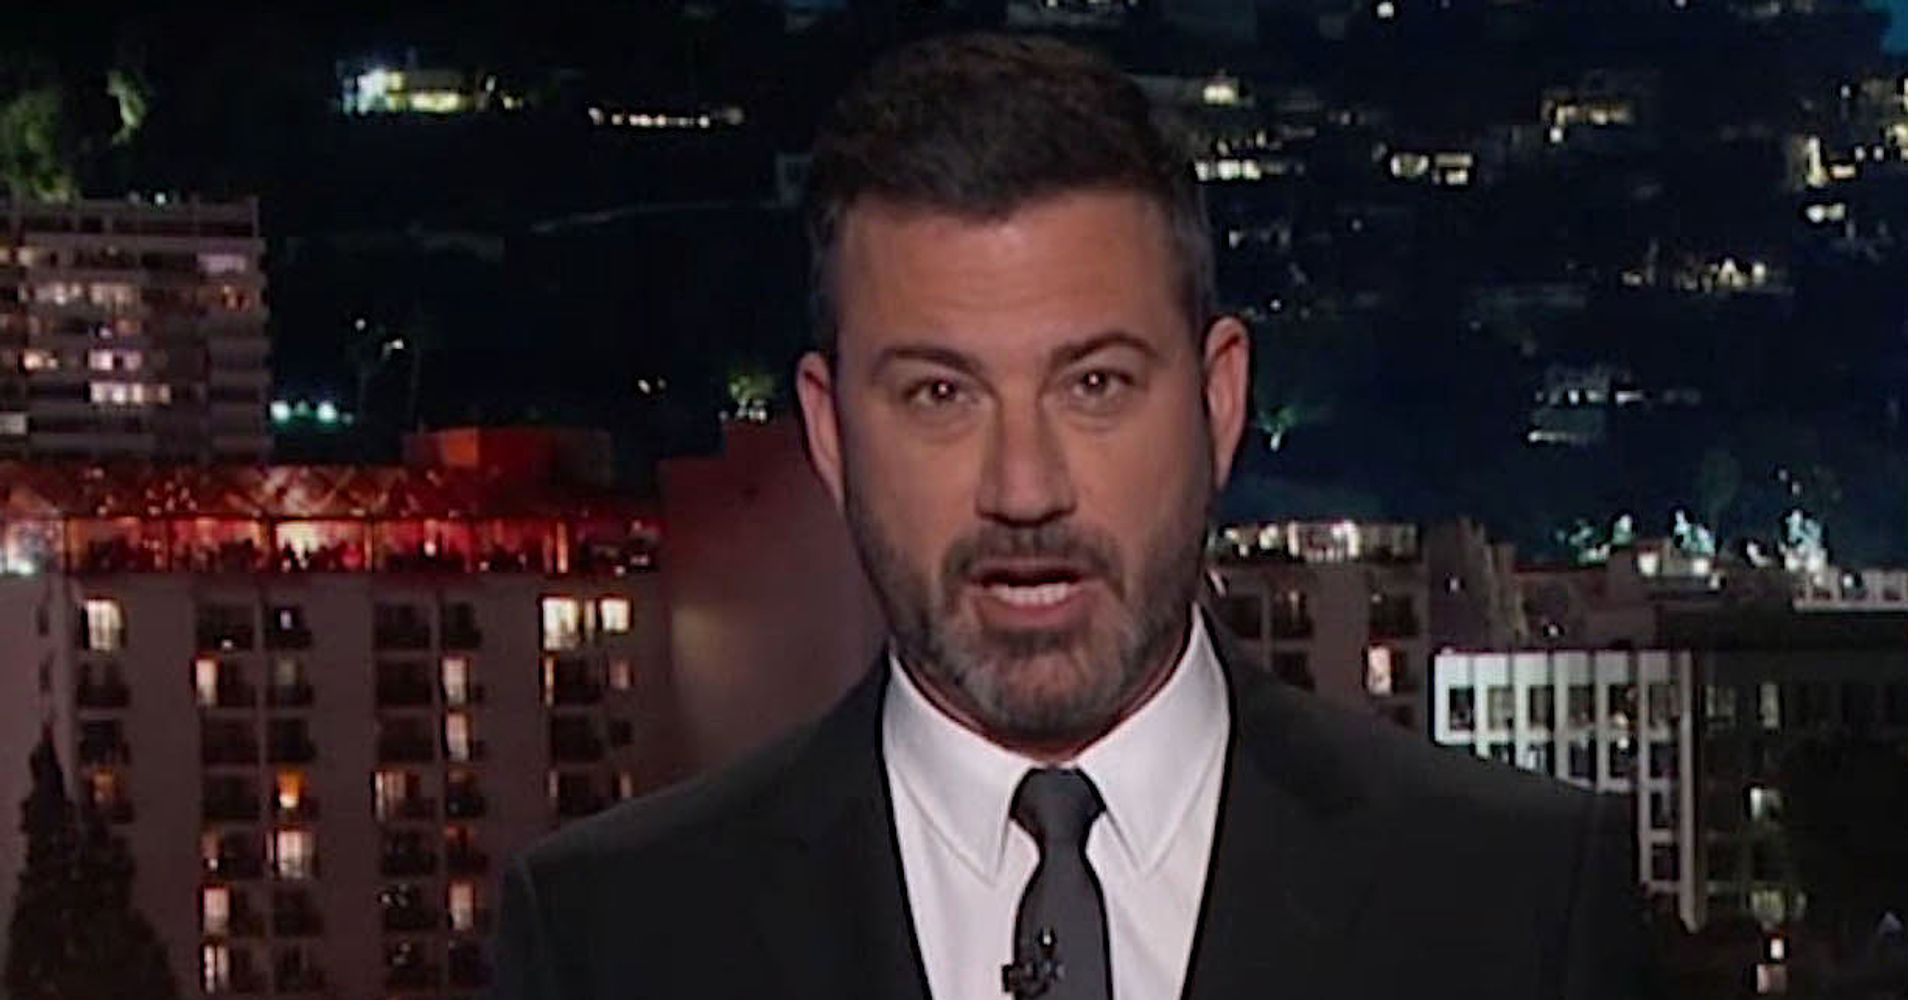 Jimmy Kimmel Finds First Lady To Be A Little Stiff